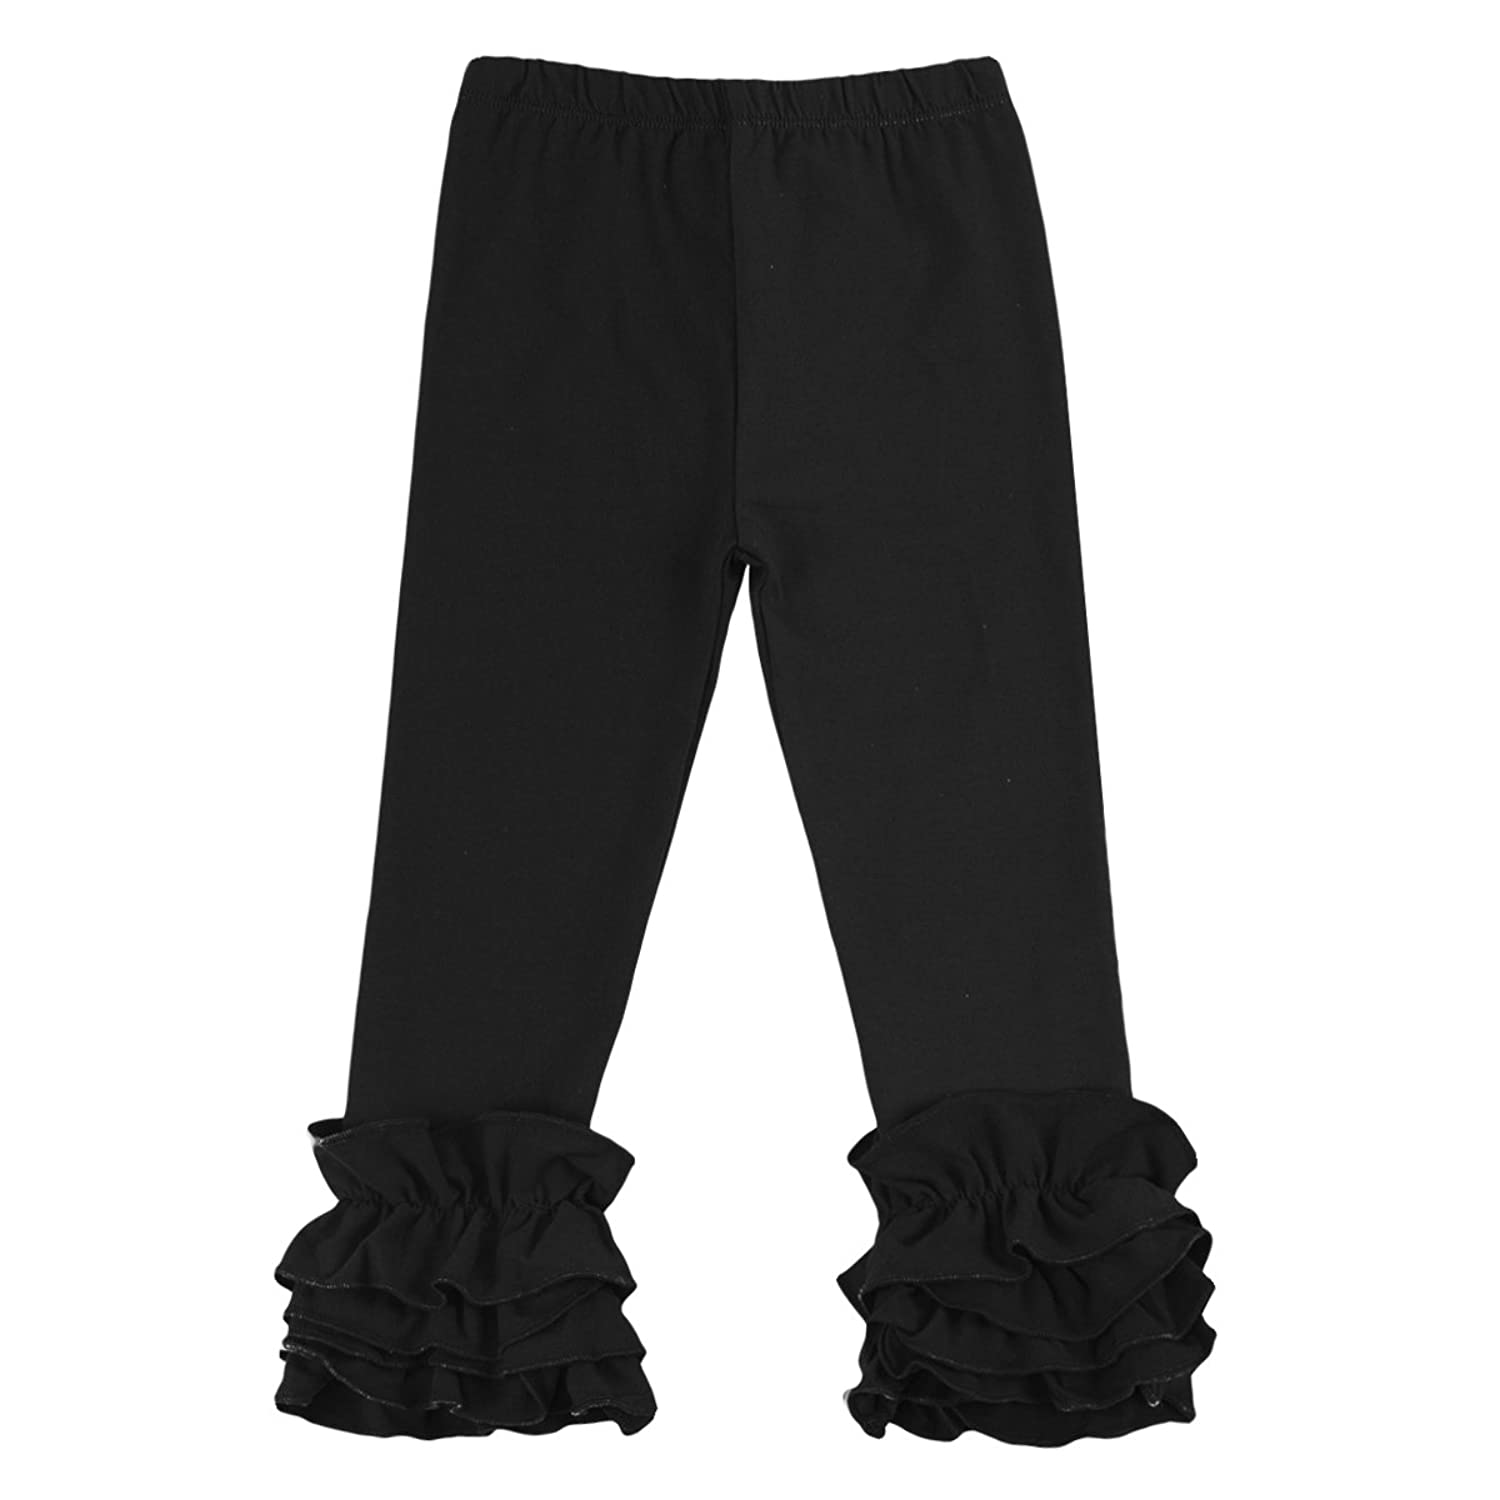 5ad9233a1 Newborn Baby girls toddler kids long pants icing ruffle pants multi color  boutique flower flare ruffle leggings cotton stripes long tights slacks  joggers ...